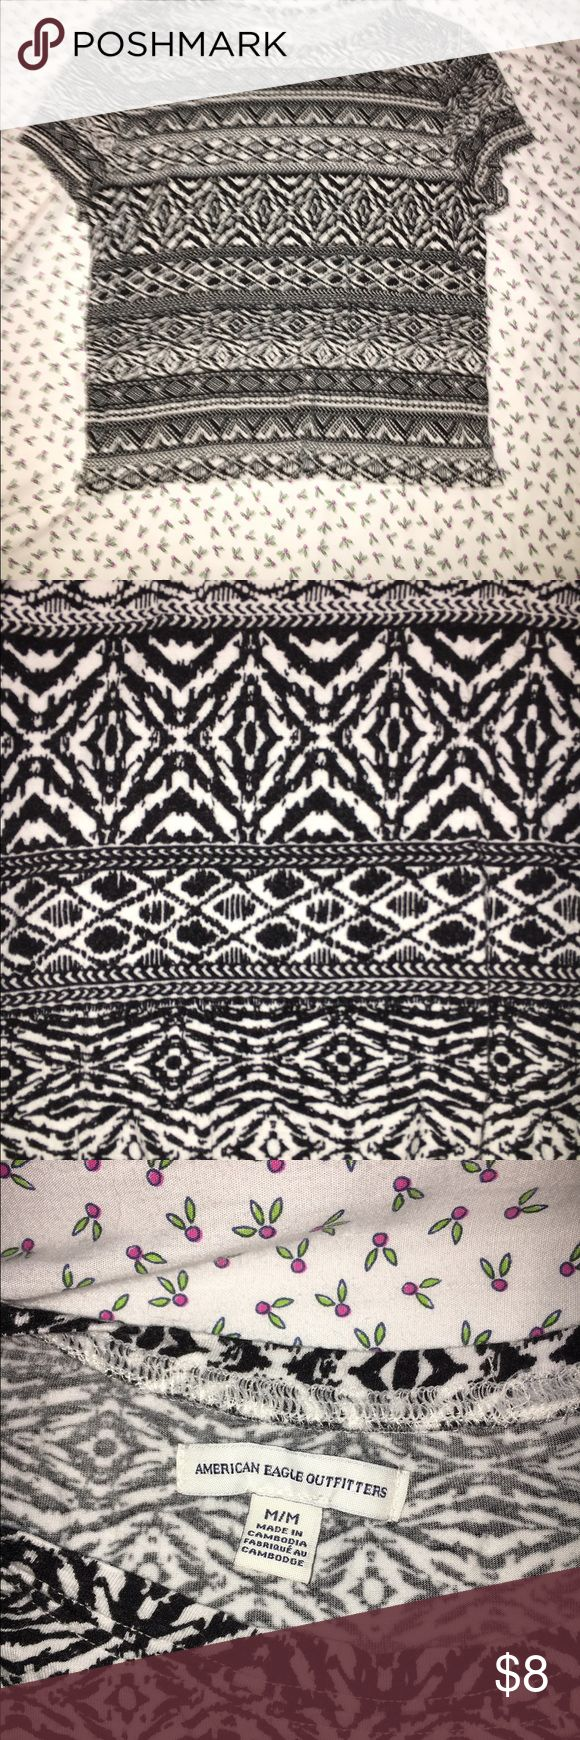 AEO Aztec Crop Top ☠️NO TRADES☠️ This top is a soft fabric with an Aztec-like design. It was purchased at American Eagle Outfitters and fits comfortably. Good condition and not worn out. American Eagle Outfitters Tops Crop Tops